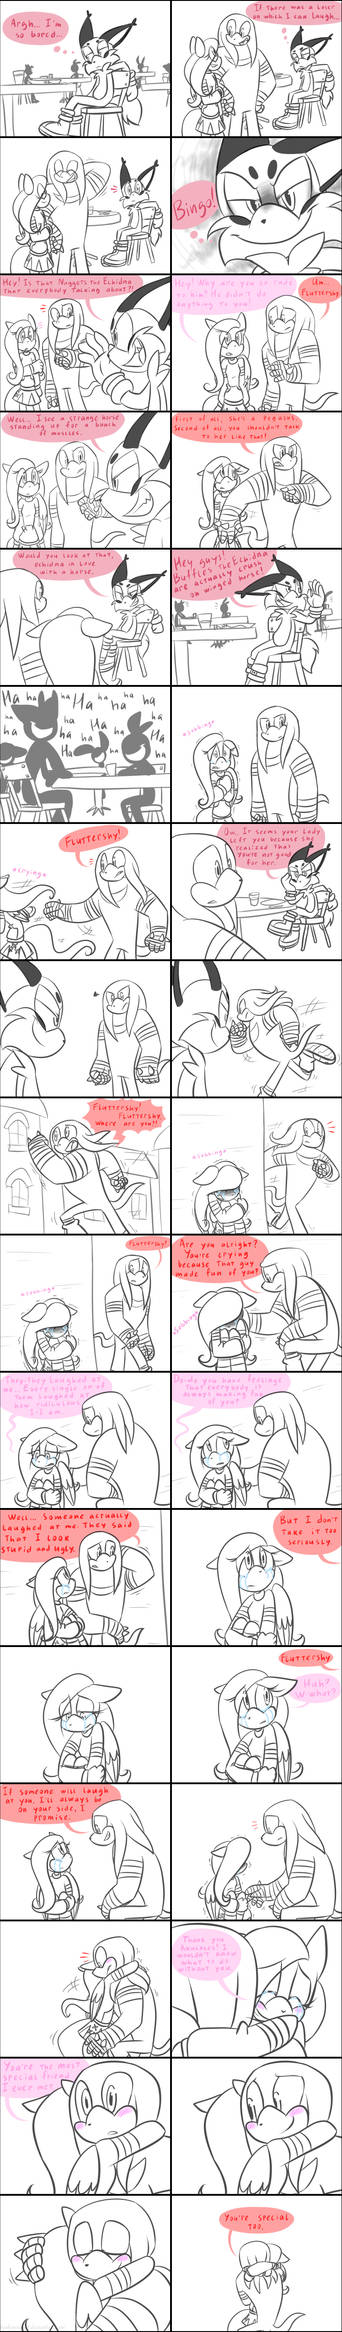 Knuckles and Fluttershy: You're not alone